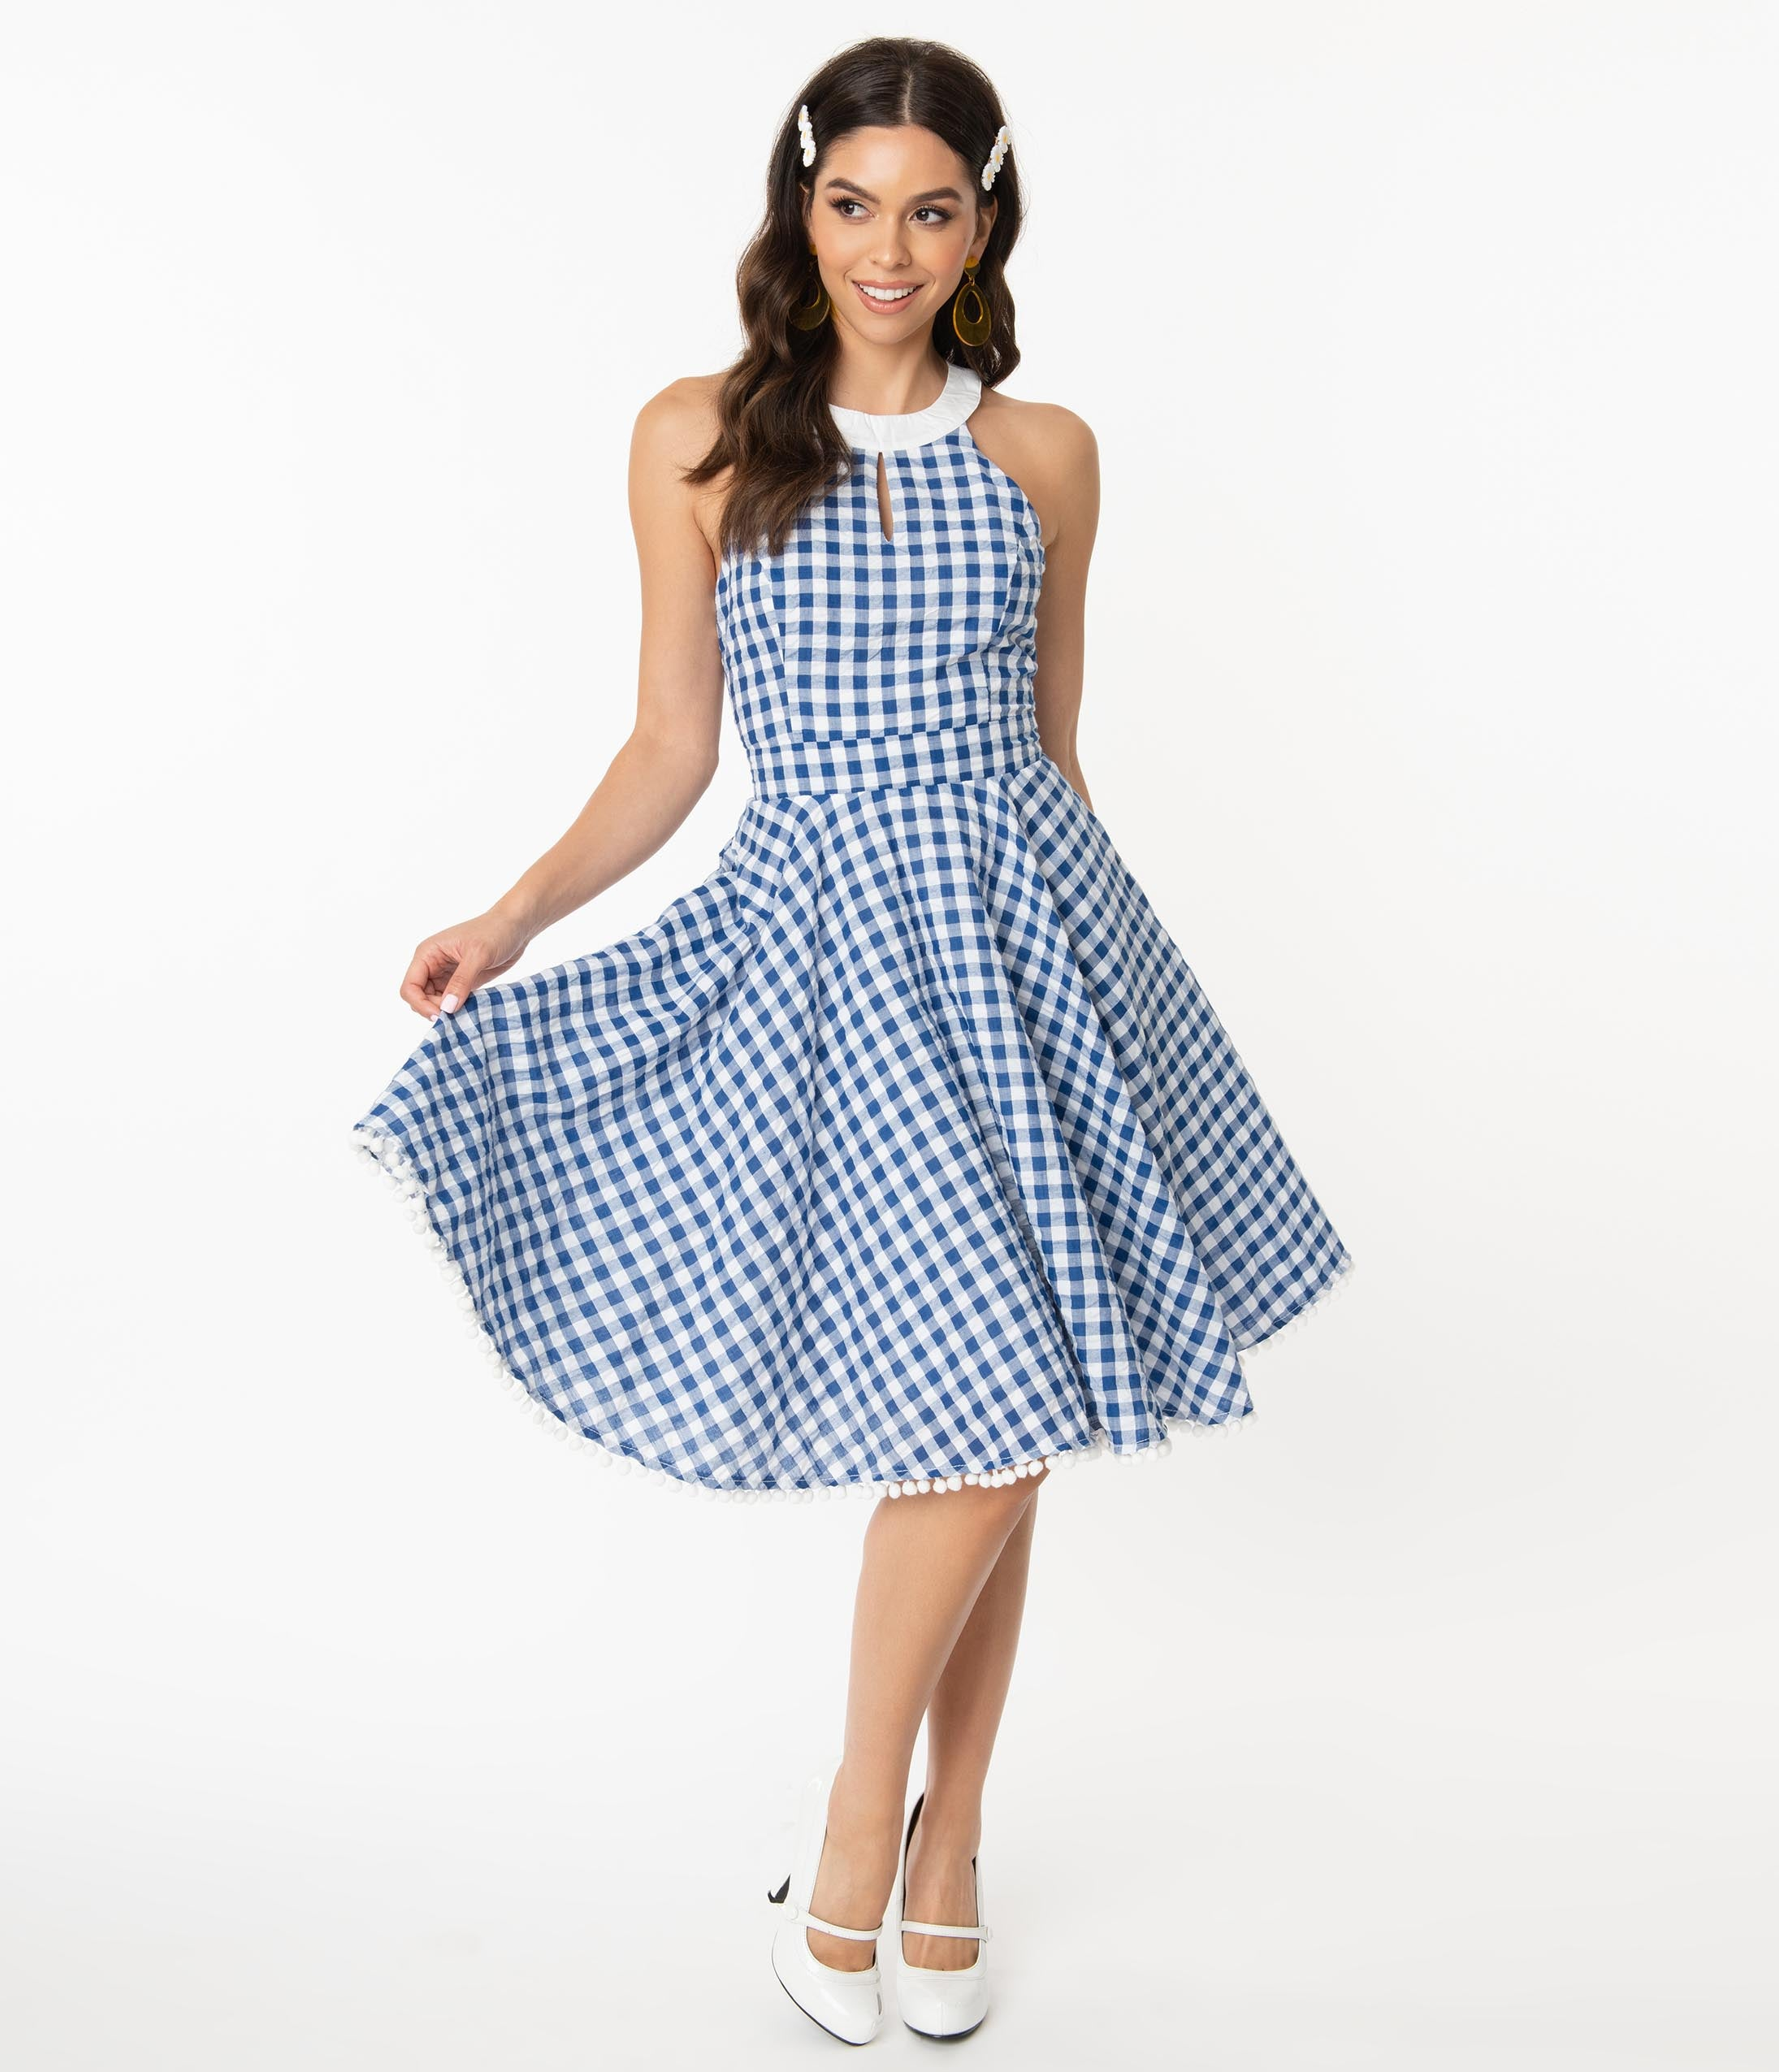 1950s Inspired Fashion: Recreate the Look Smak Parlour Navy  White Gingham Make Me Over Flare Dress $78.00 AT vintagedancer.com